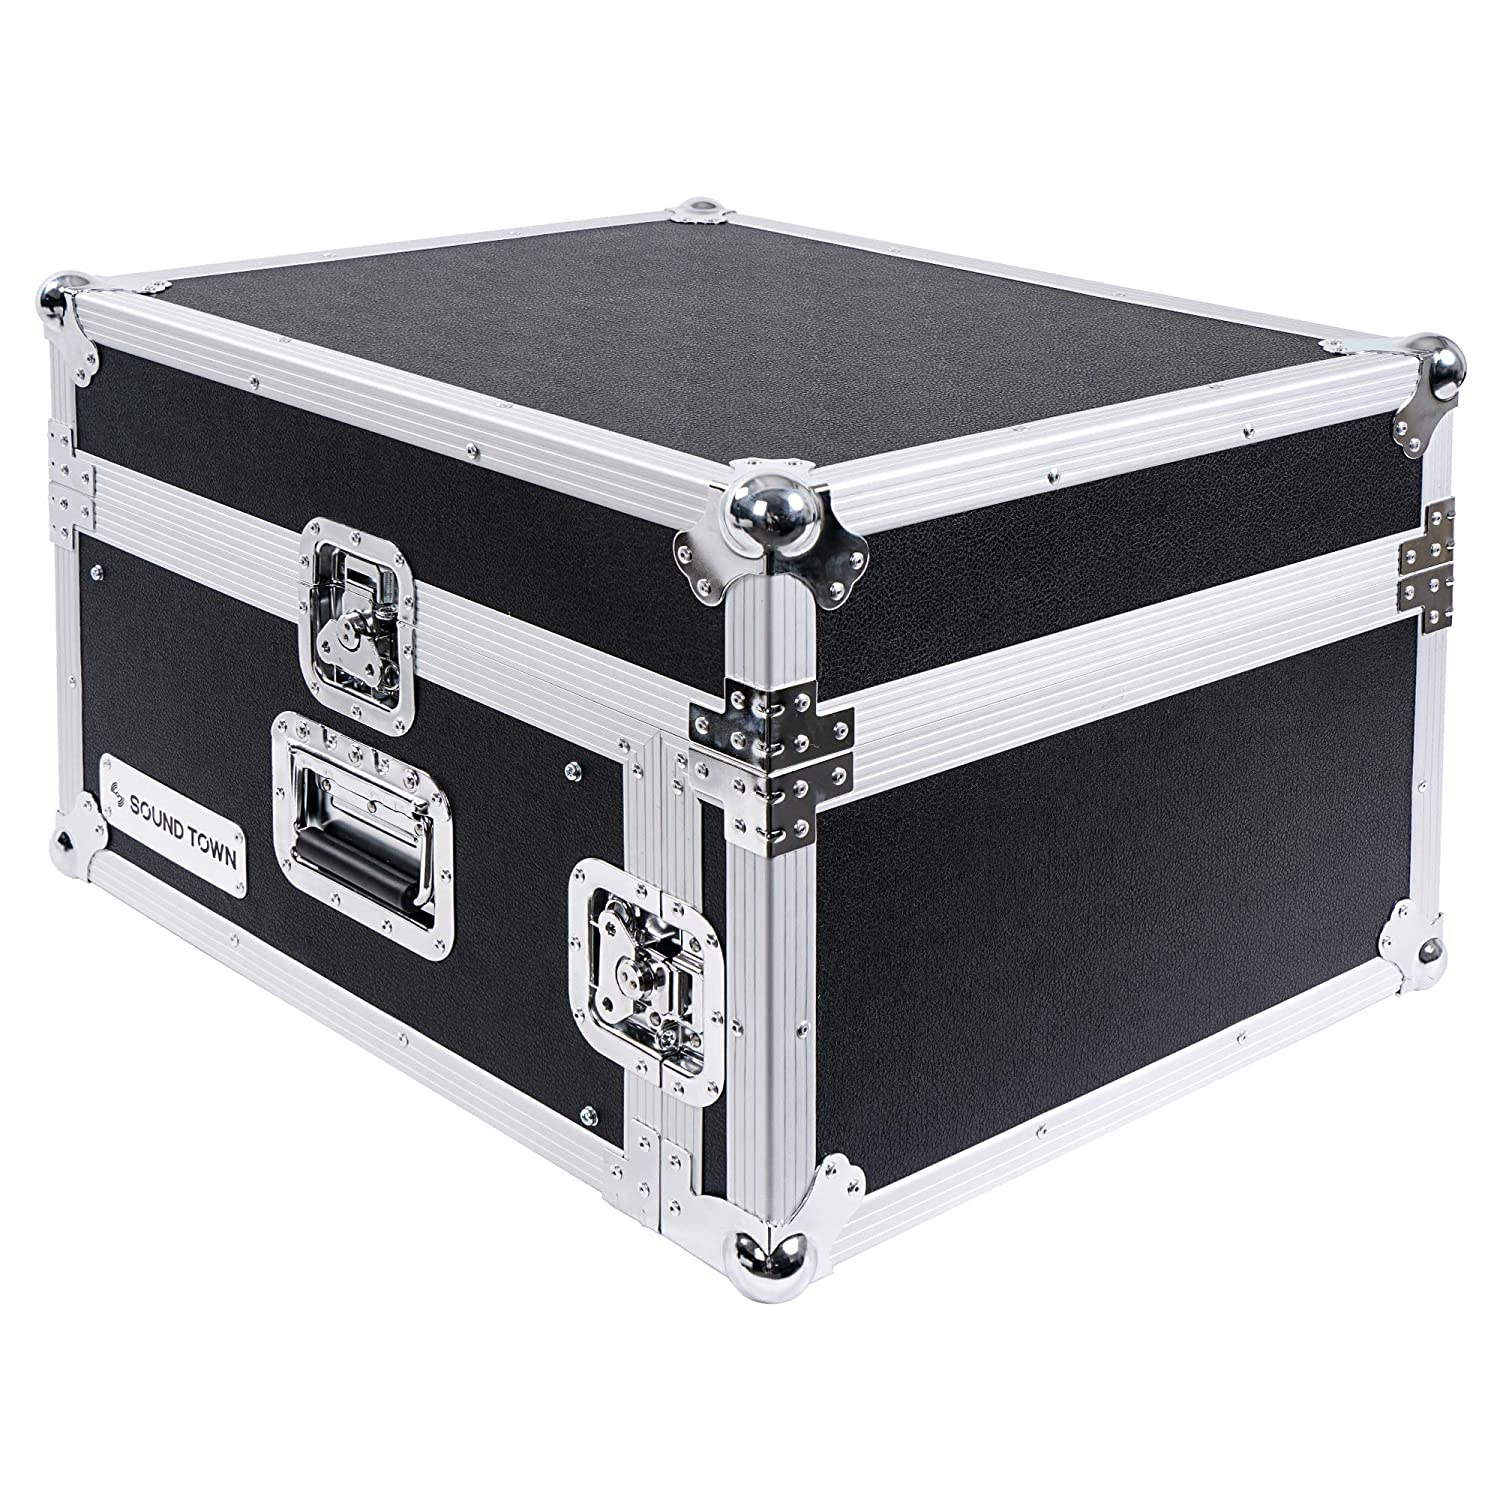 Sound Town 12-Space PA/DJ Pro Audio Rack/Road Case with Slant Mixer Top (STMR-12UW)